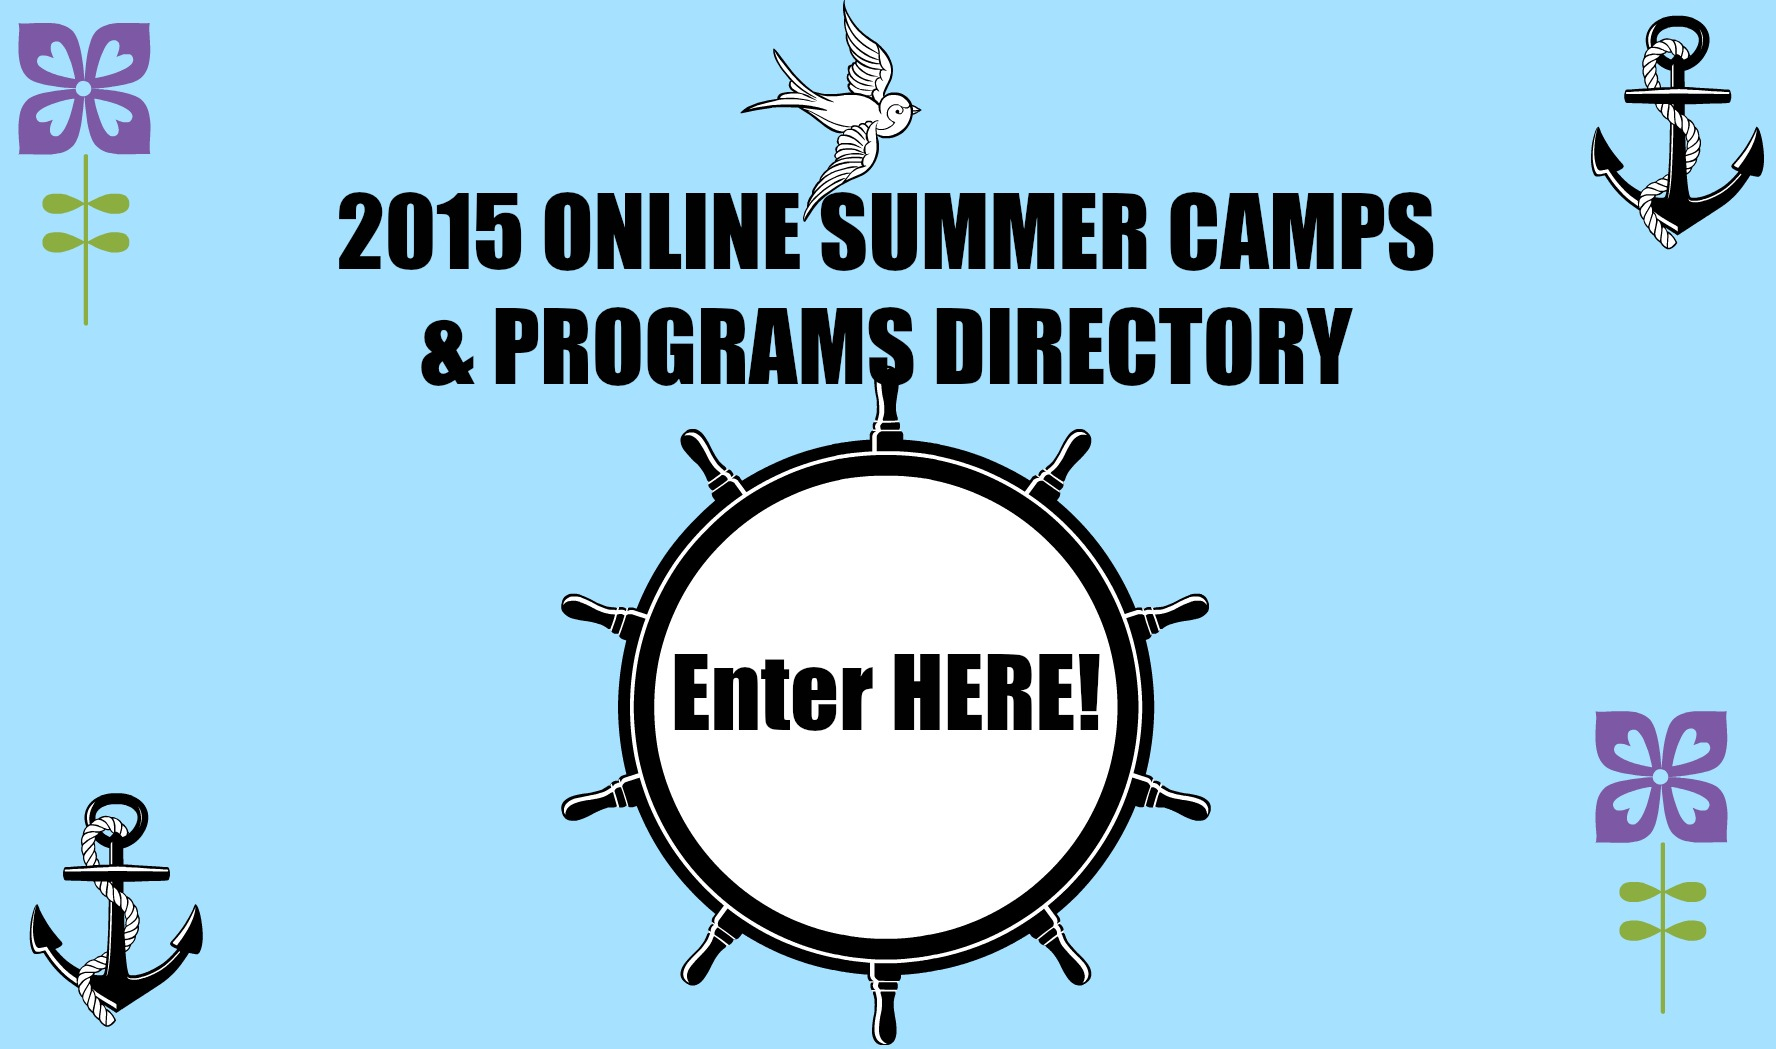 2015 Online Summer Camps & Programs Directory